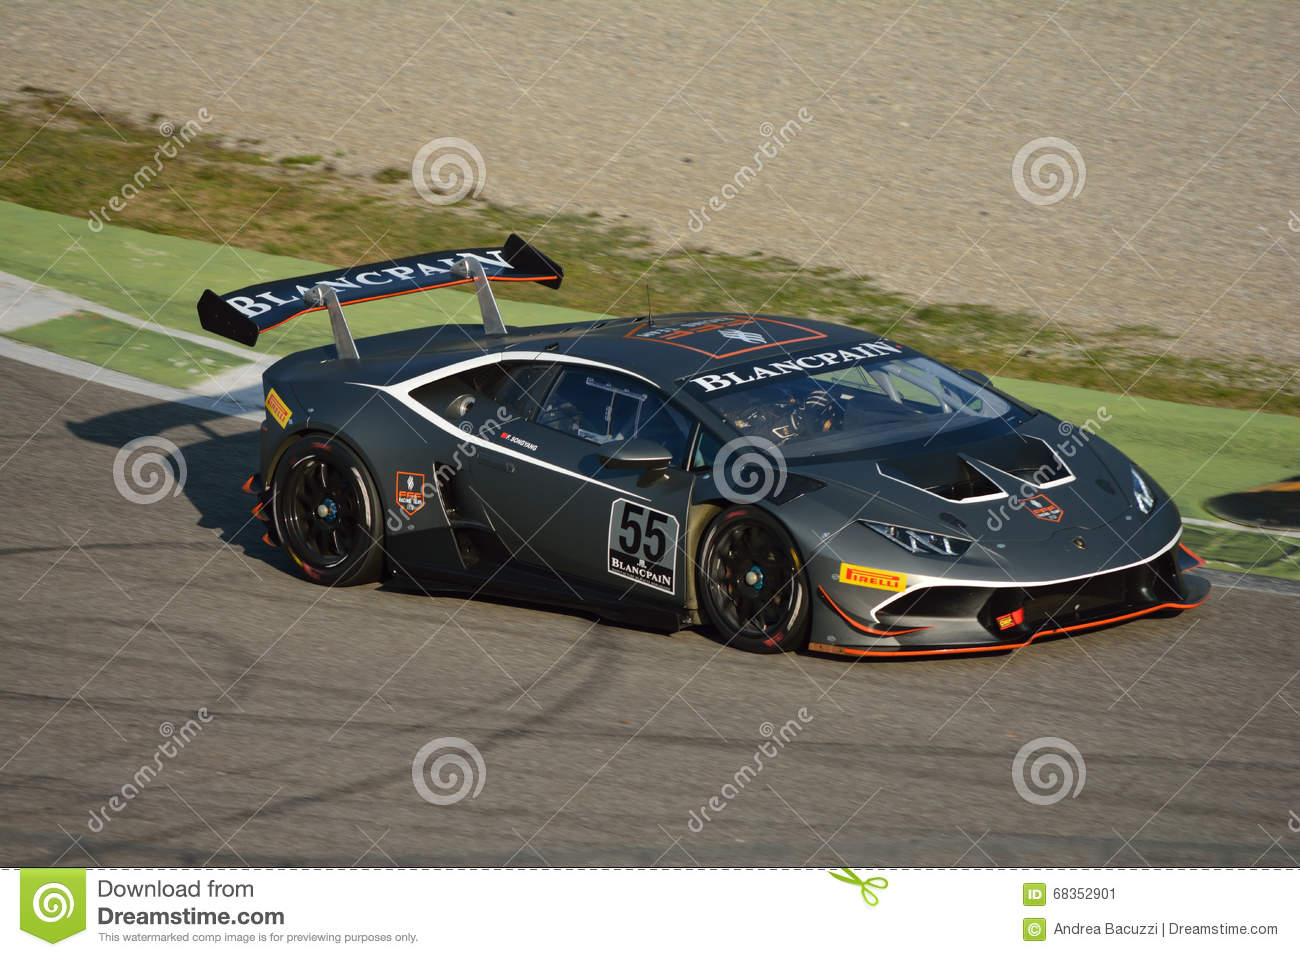 lamborghini hurac n super trofeo 2016 at monza editorial photo image 68352901. Black Bedroom Furniture Sets. Home Design Ideas